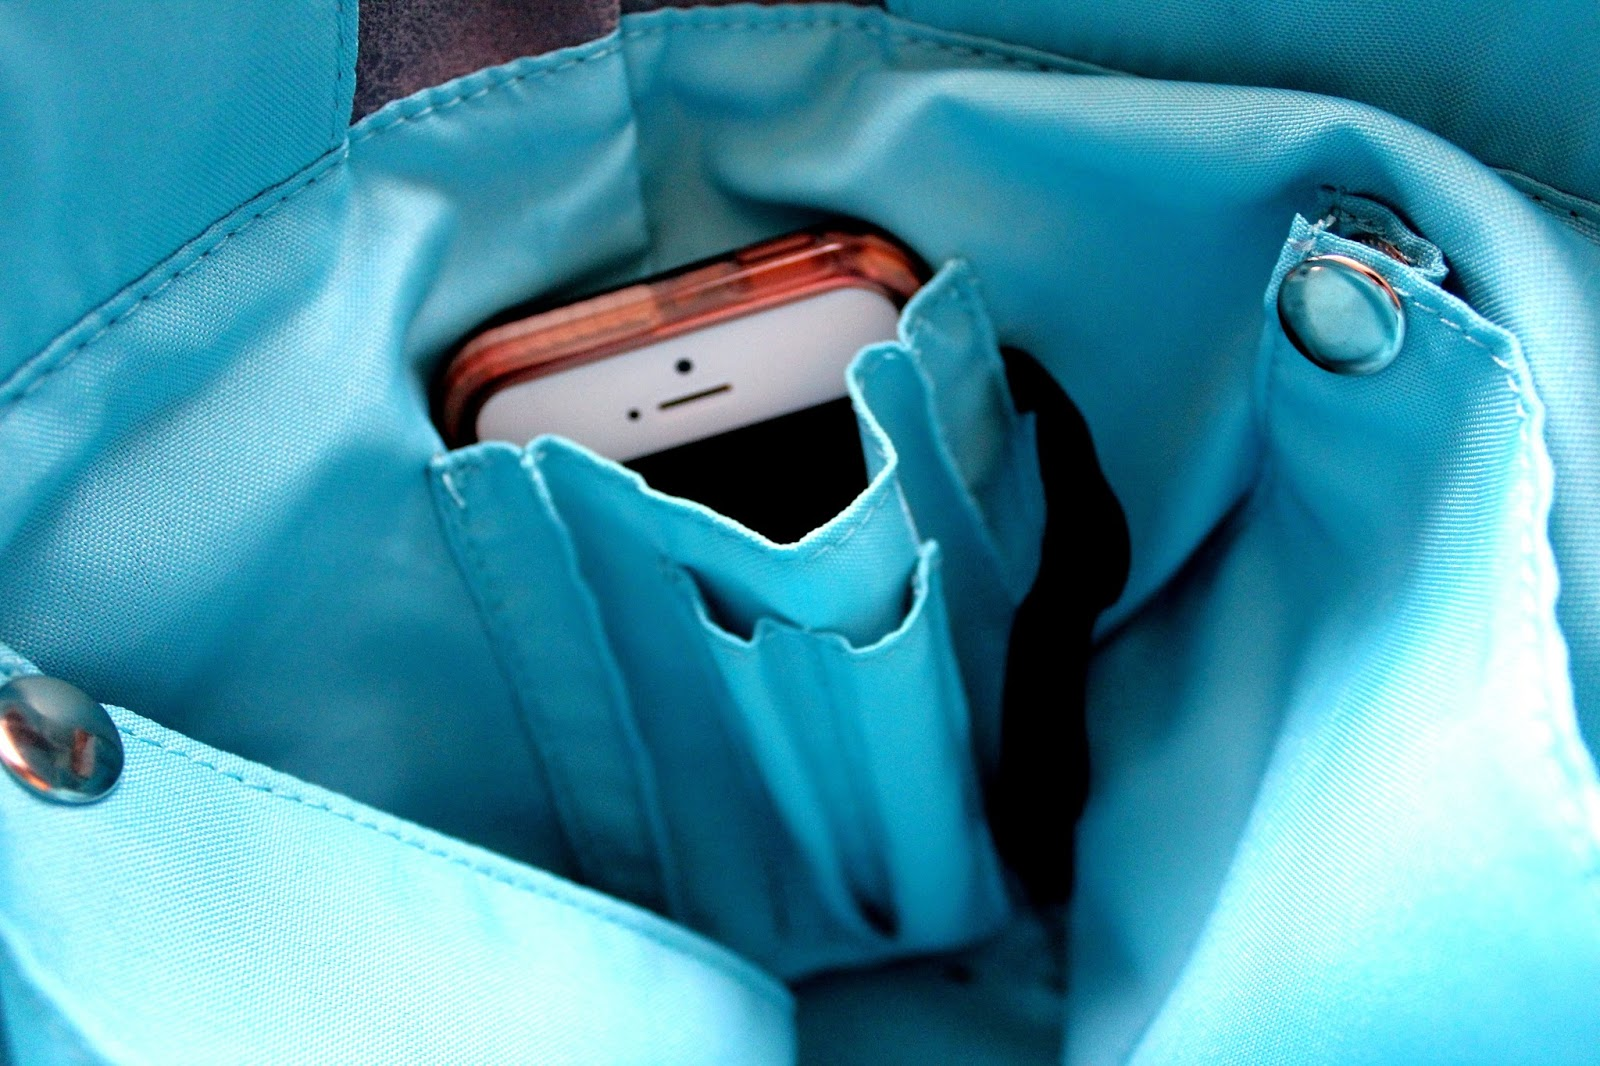 Turquoise interior of a handbag, a phone is visible in the phone holder.